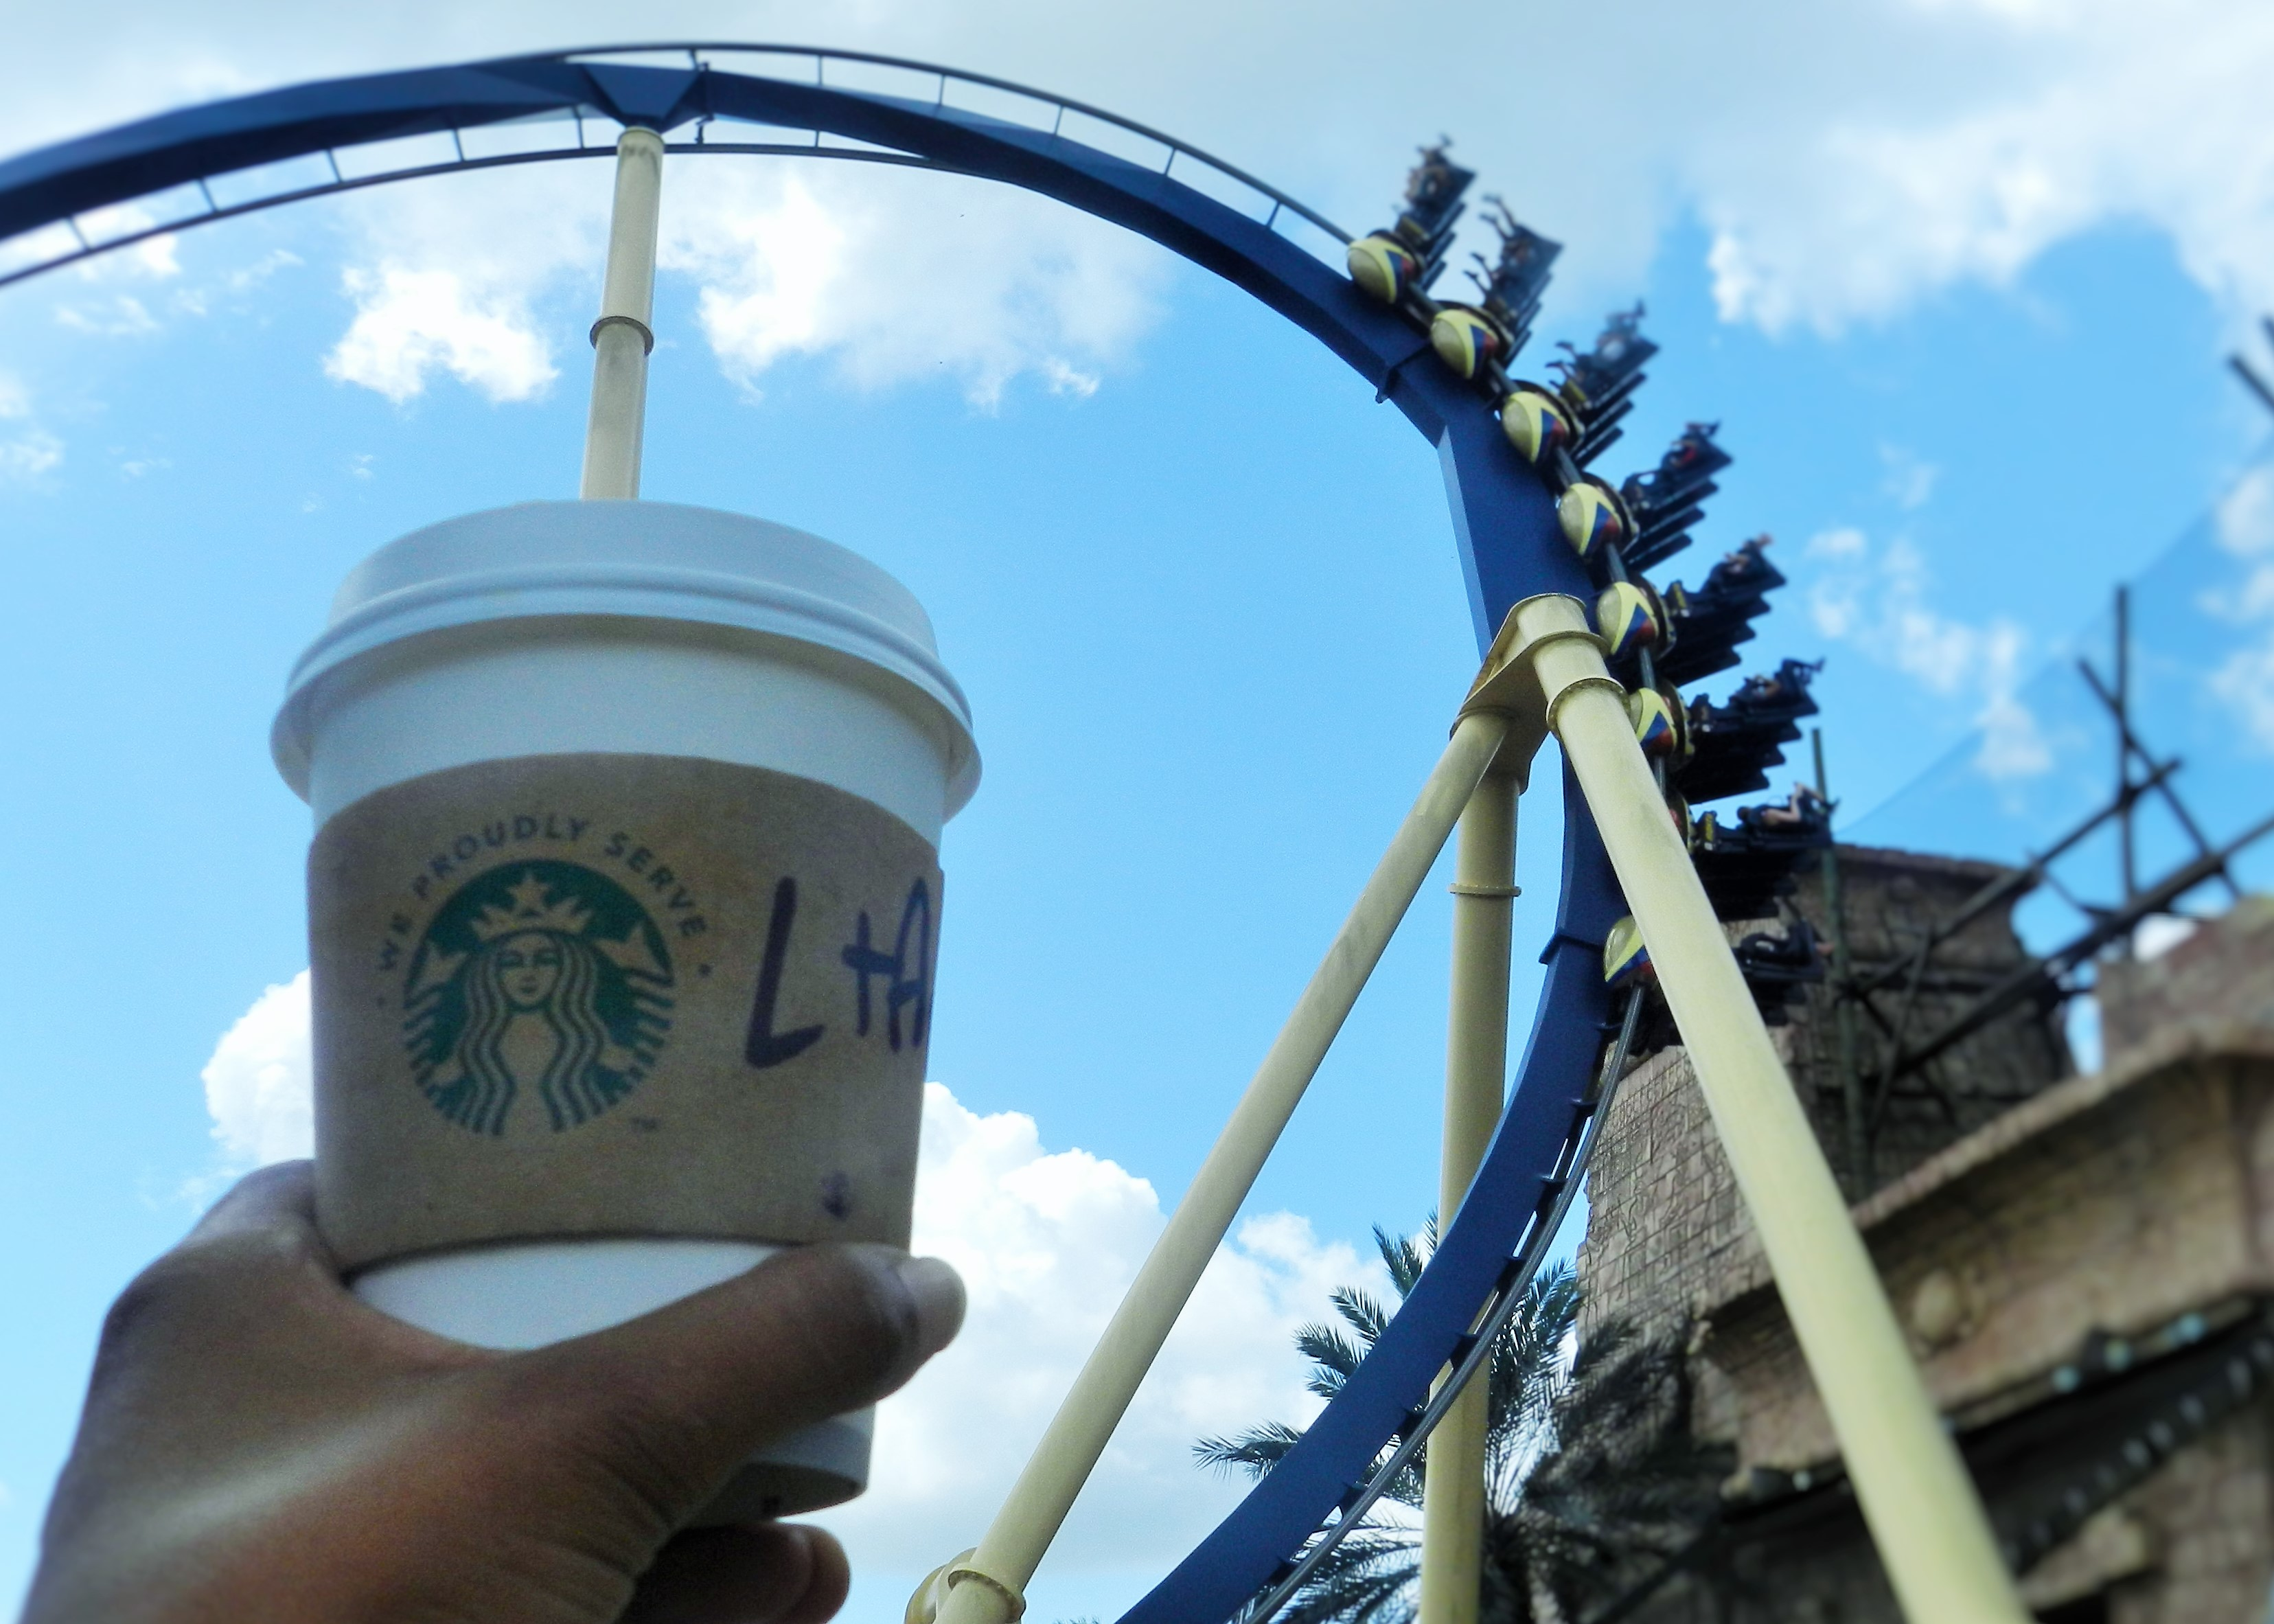 Coasters and Coffee Busch Gardens Montu Roller Coaster